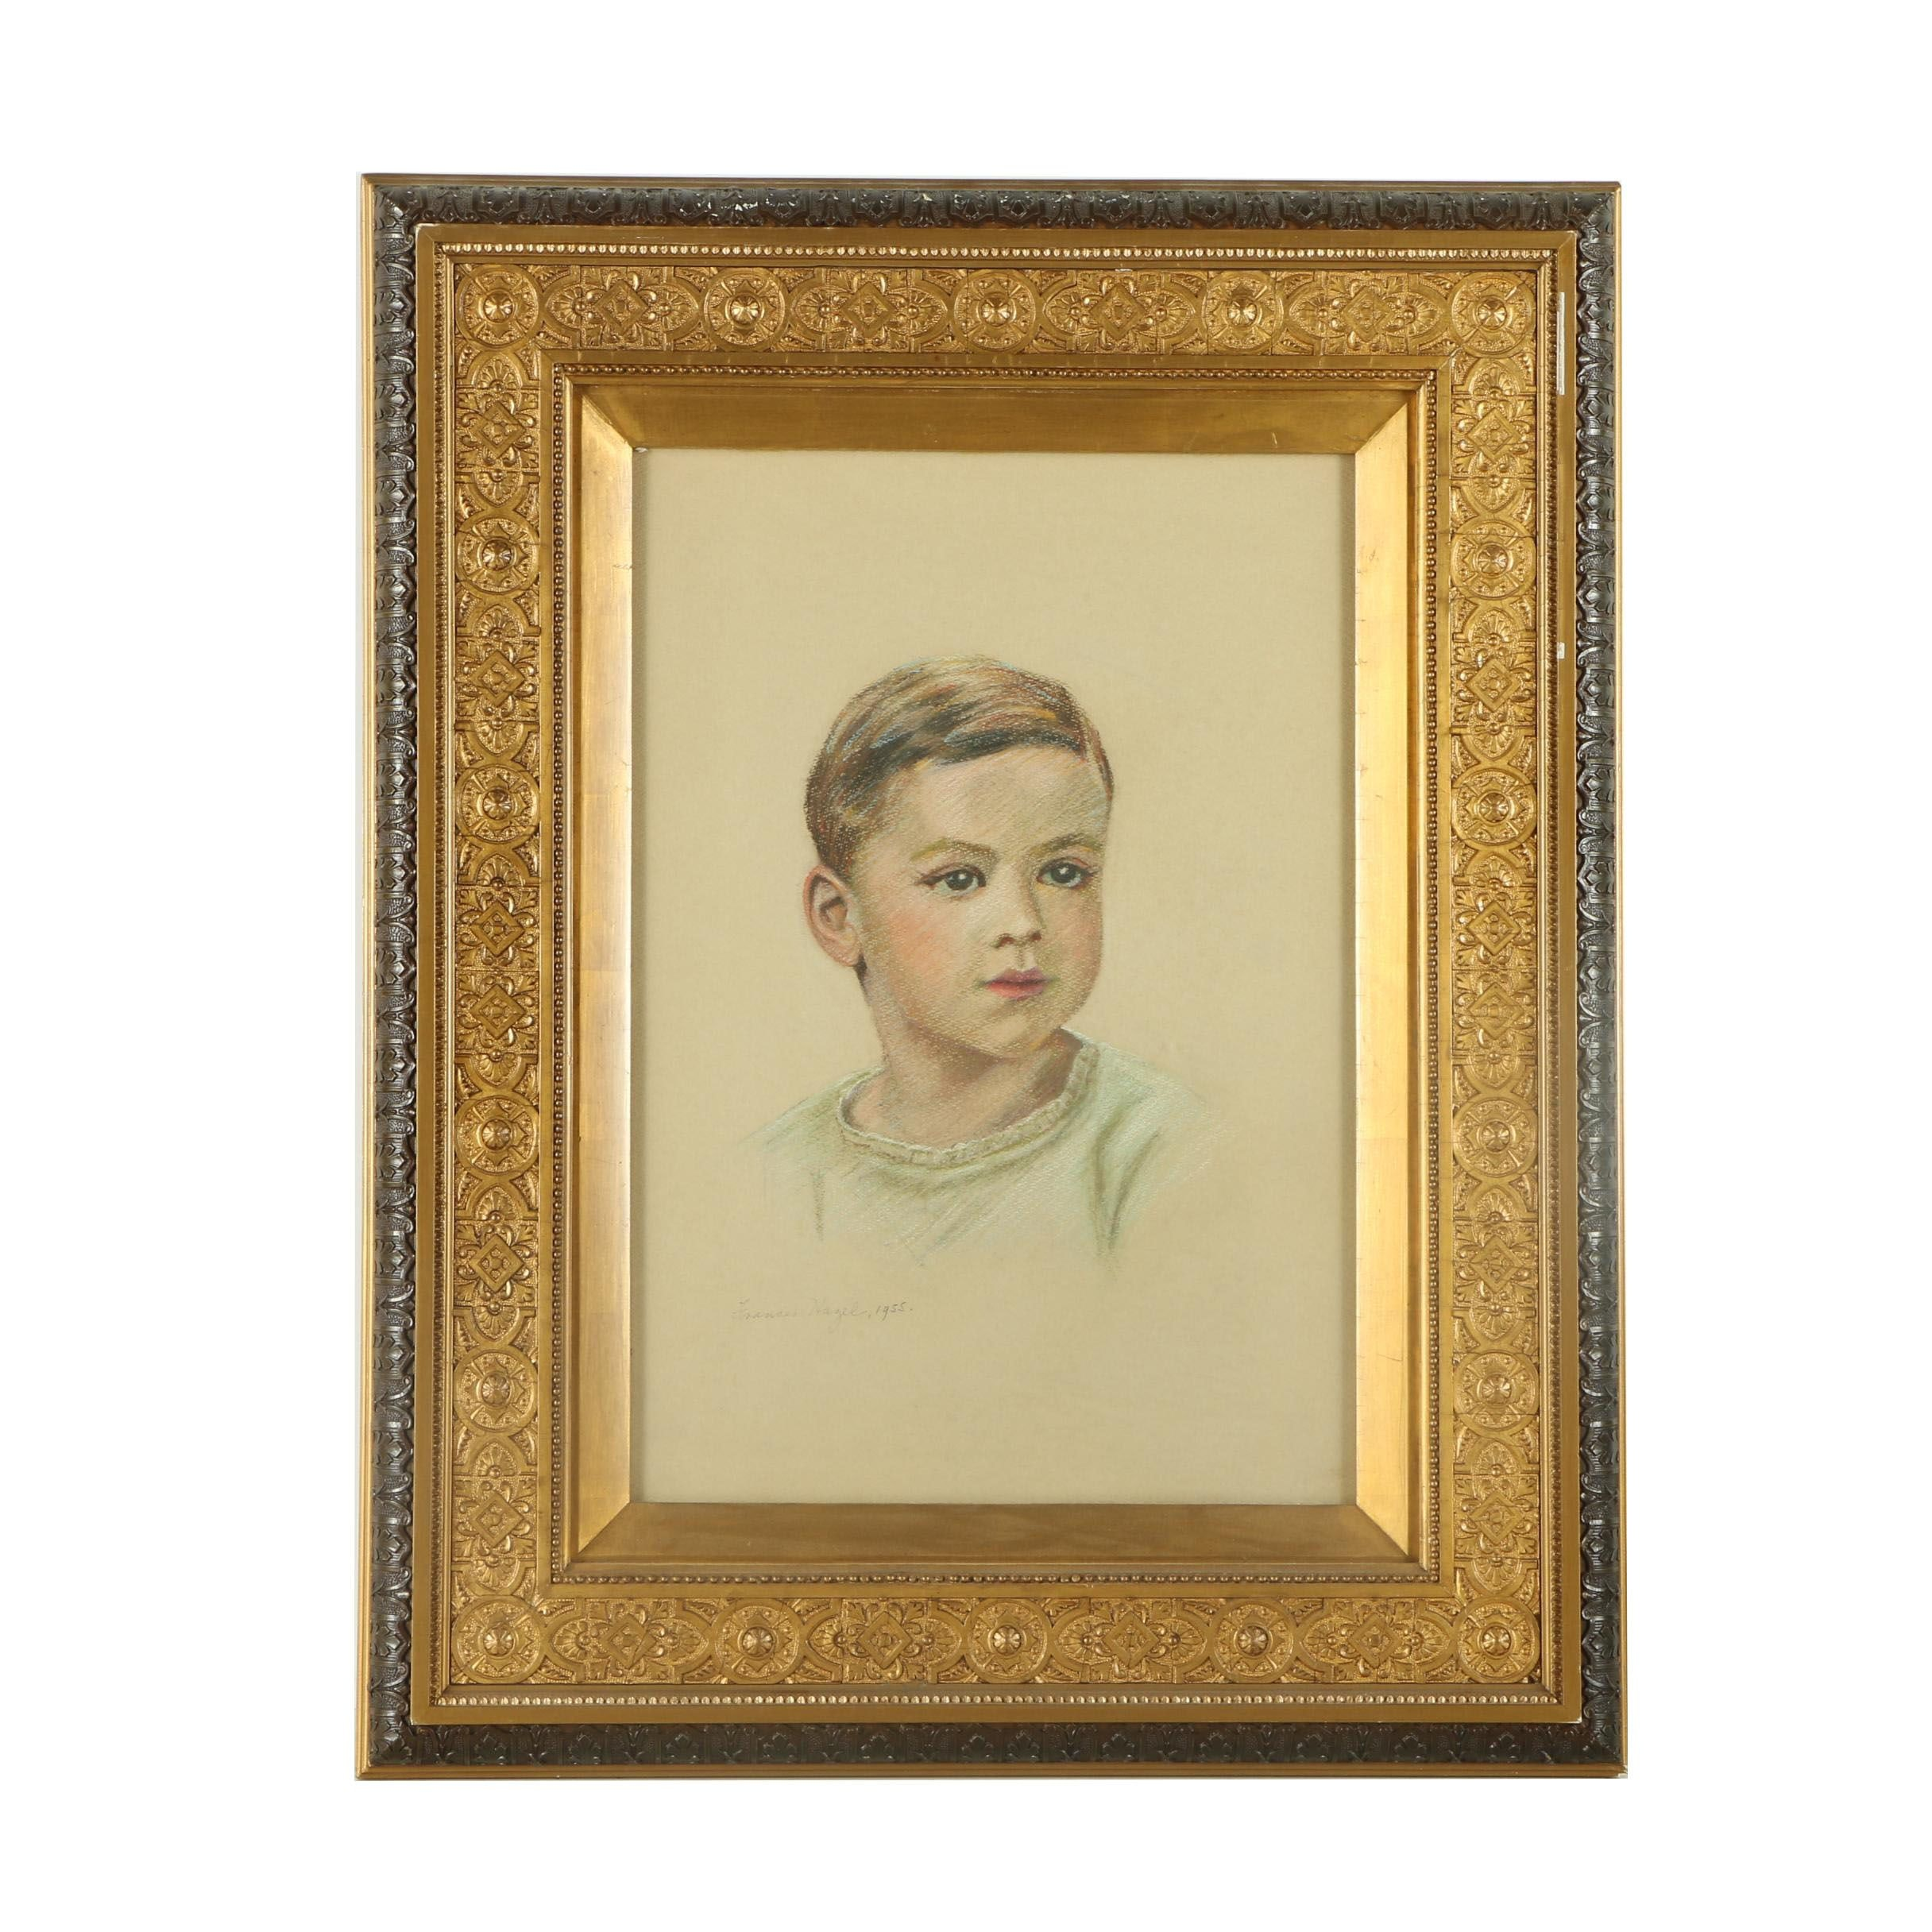 1955 Frances Hazel Pastel Portrait of Frederick Hennie